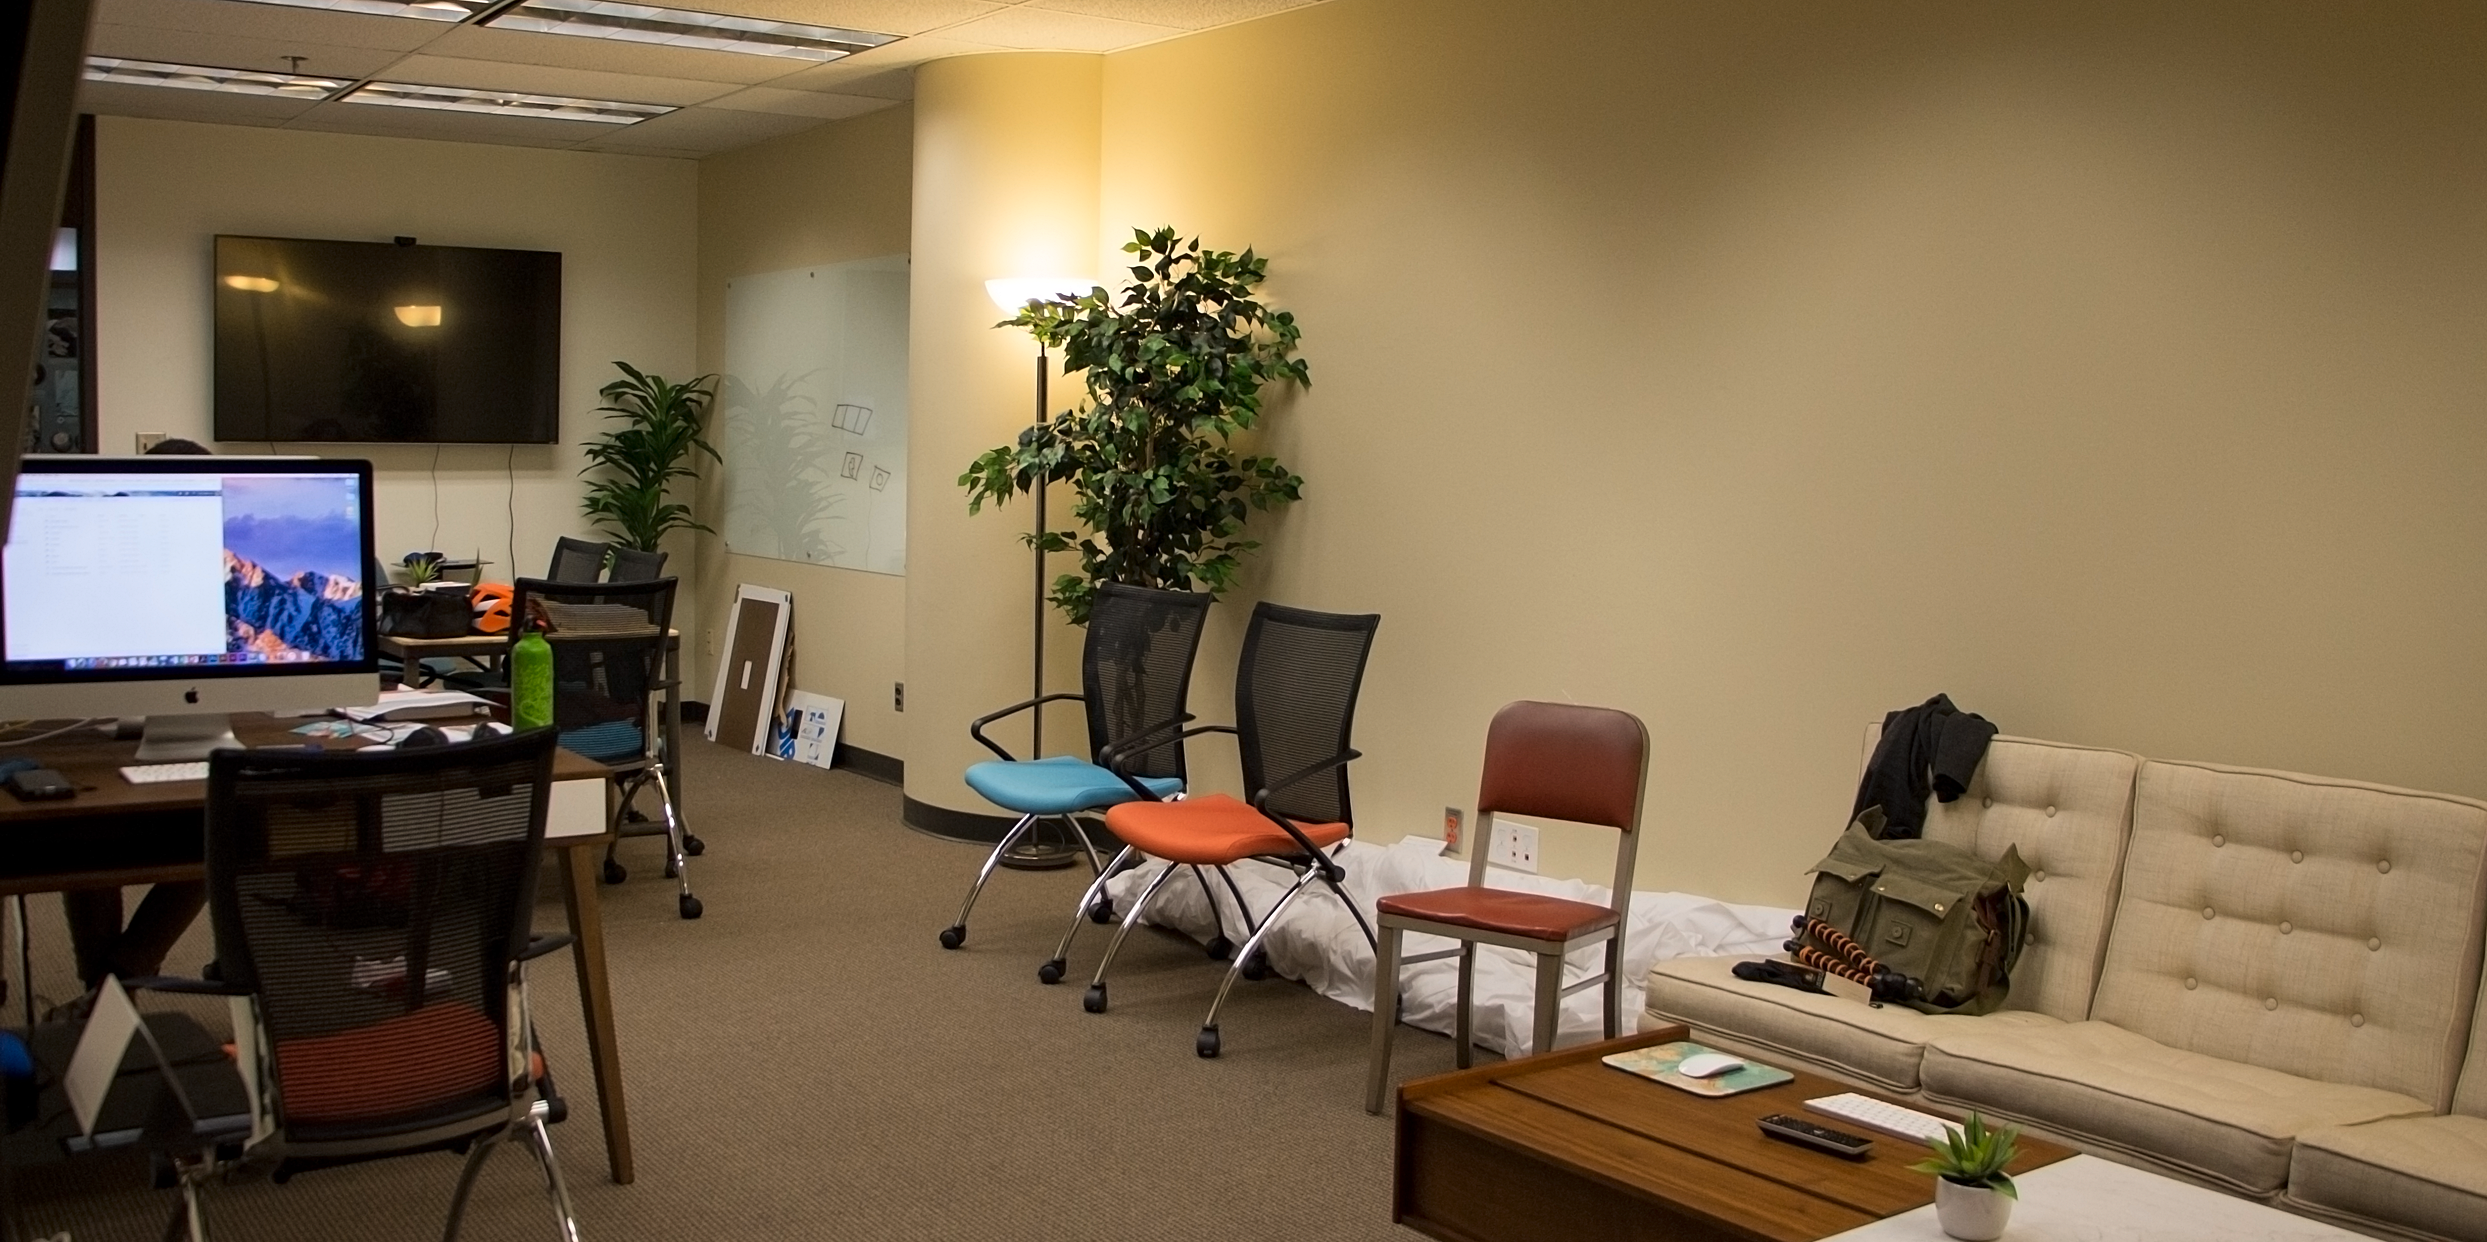 The Experimental Geography Studio, workspace for Bachelor, Masters and Doctoral candidates.